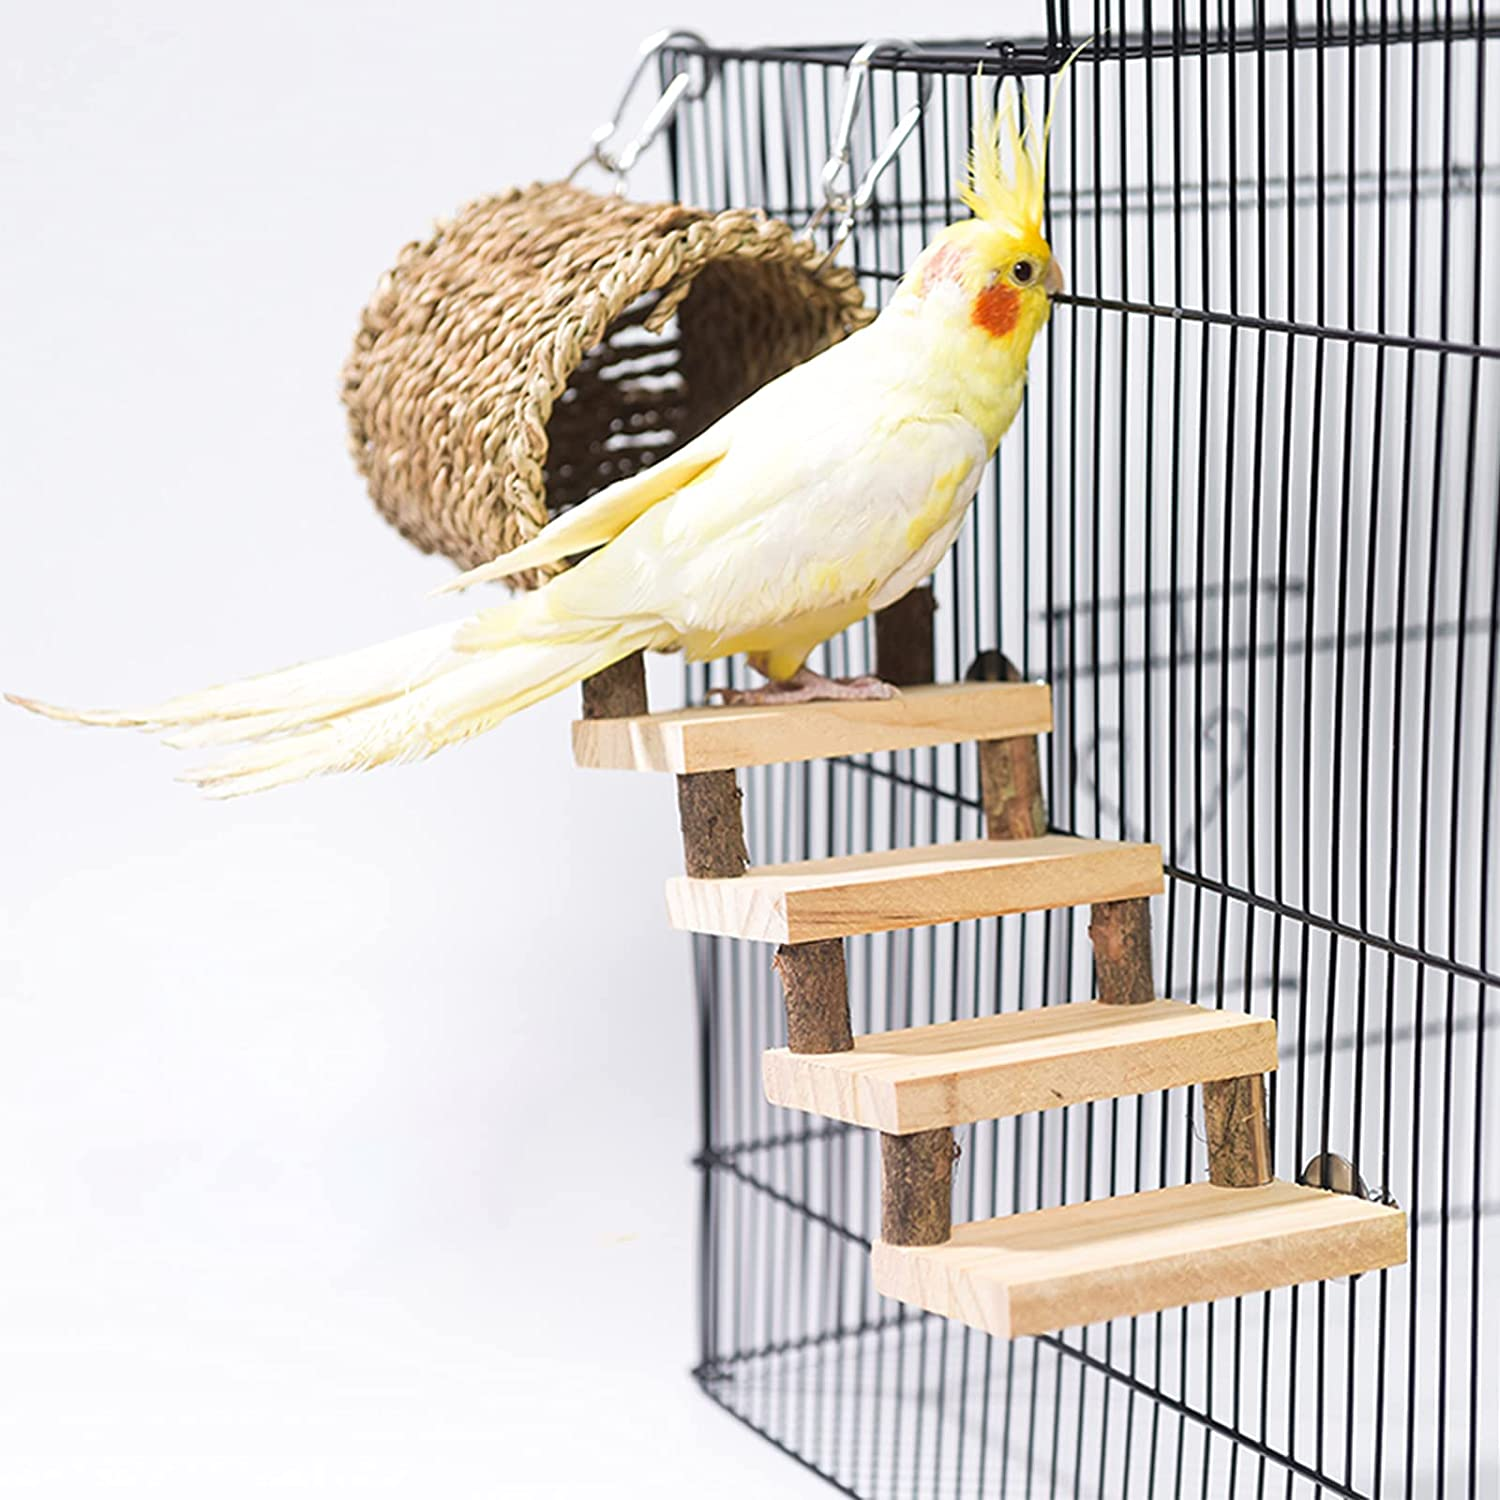 QBLEEV Super special price Bird Nest Washington Mall with Climbing Ladder T Perches Swing Cage